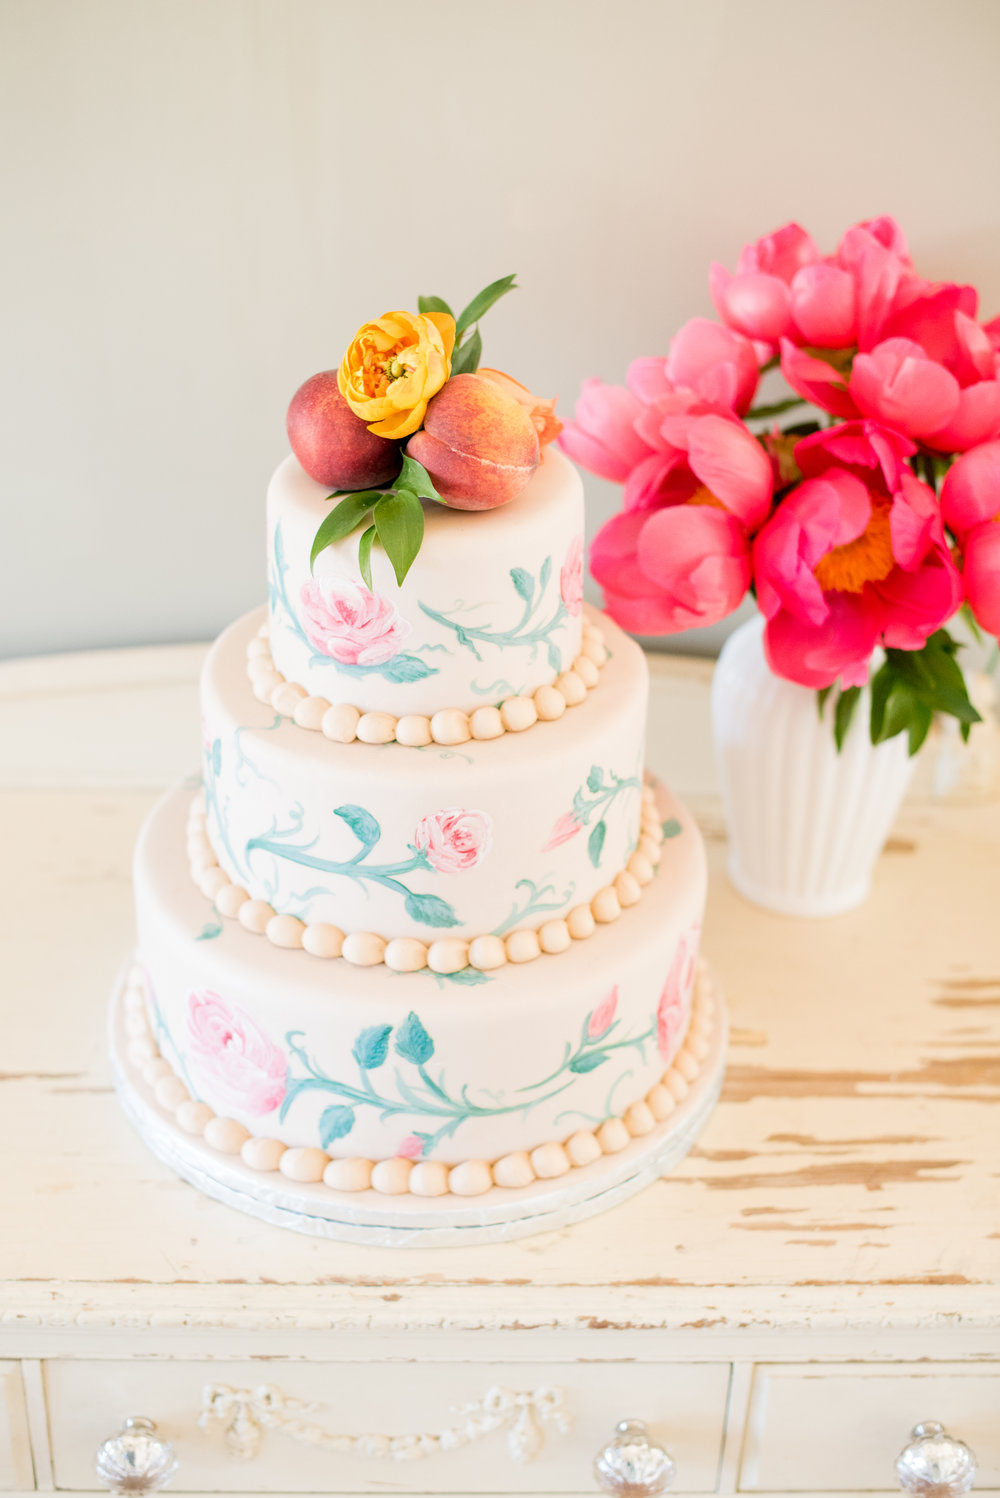 Flowery Cake | Edible Art Bakery of Raleigh